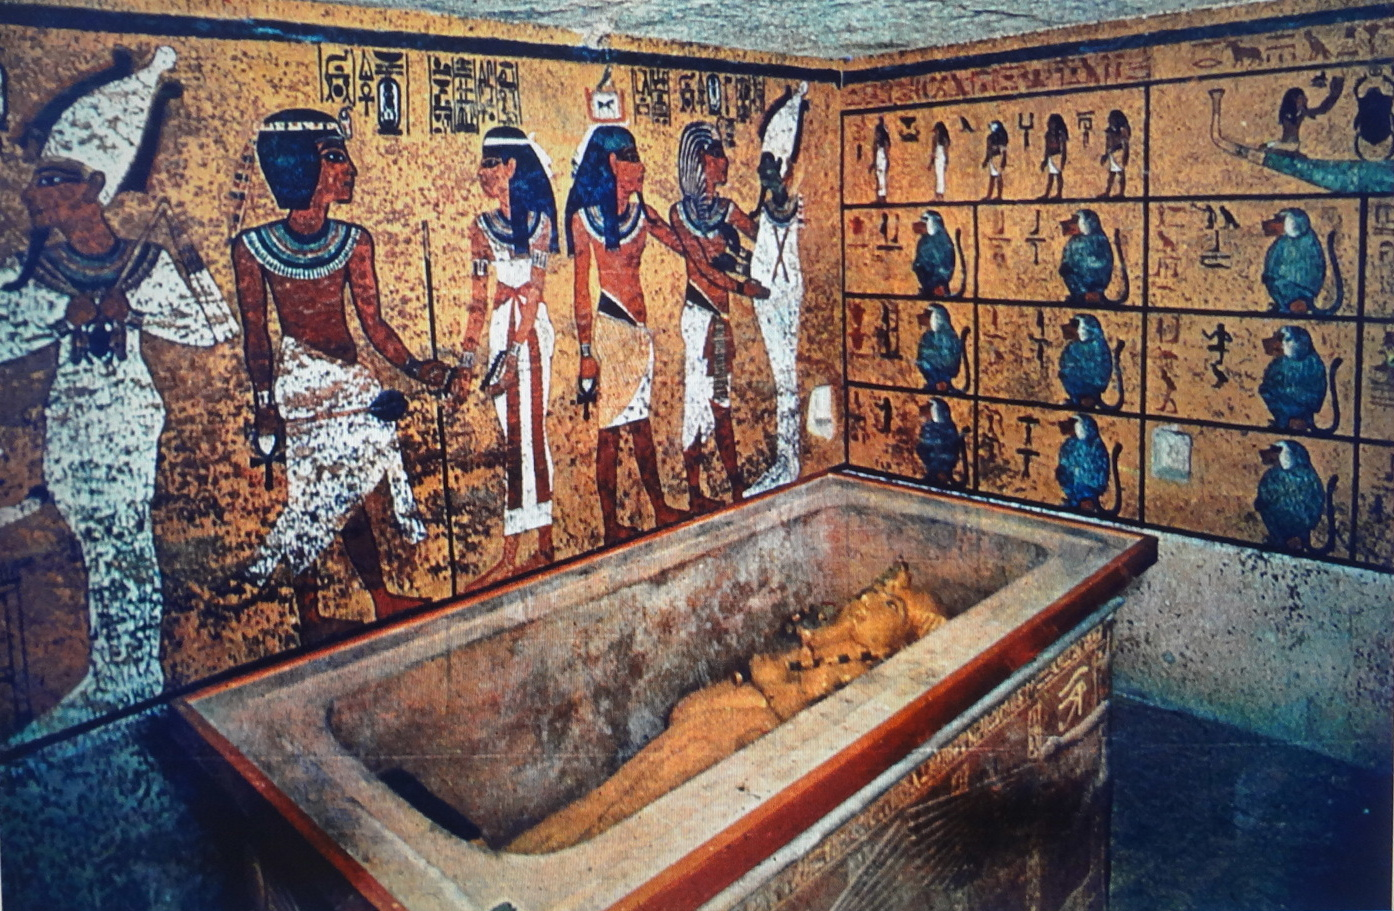 the tomb of king tutankhamun of egypt Egypt 'suppressing truth' over hidden chambers in tutankhamun's tomb scientists accuse government of failing to release data disproving claims that burial site contains nefertiti's remains .